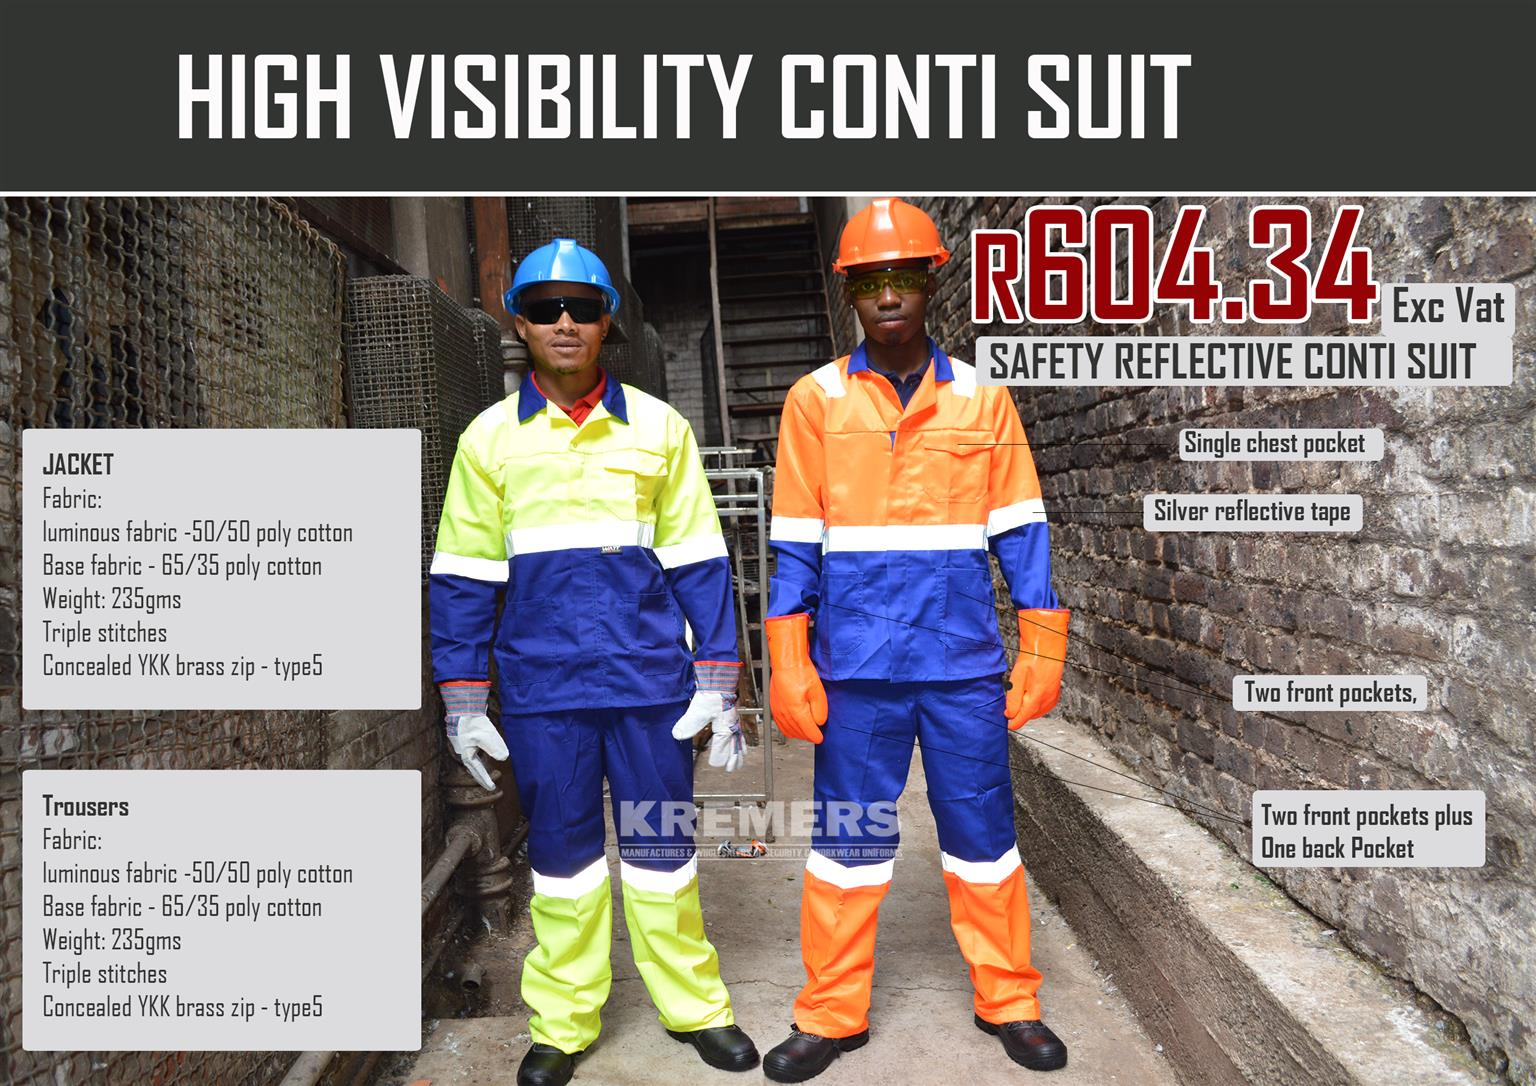 SAFETY REFLECTIVE CONTI-SUIT